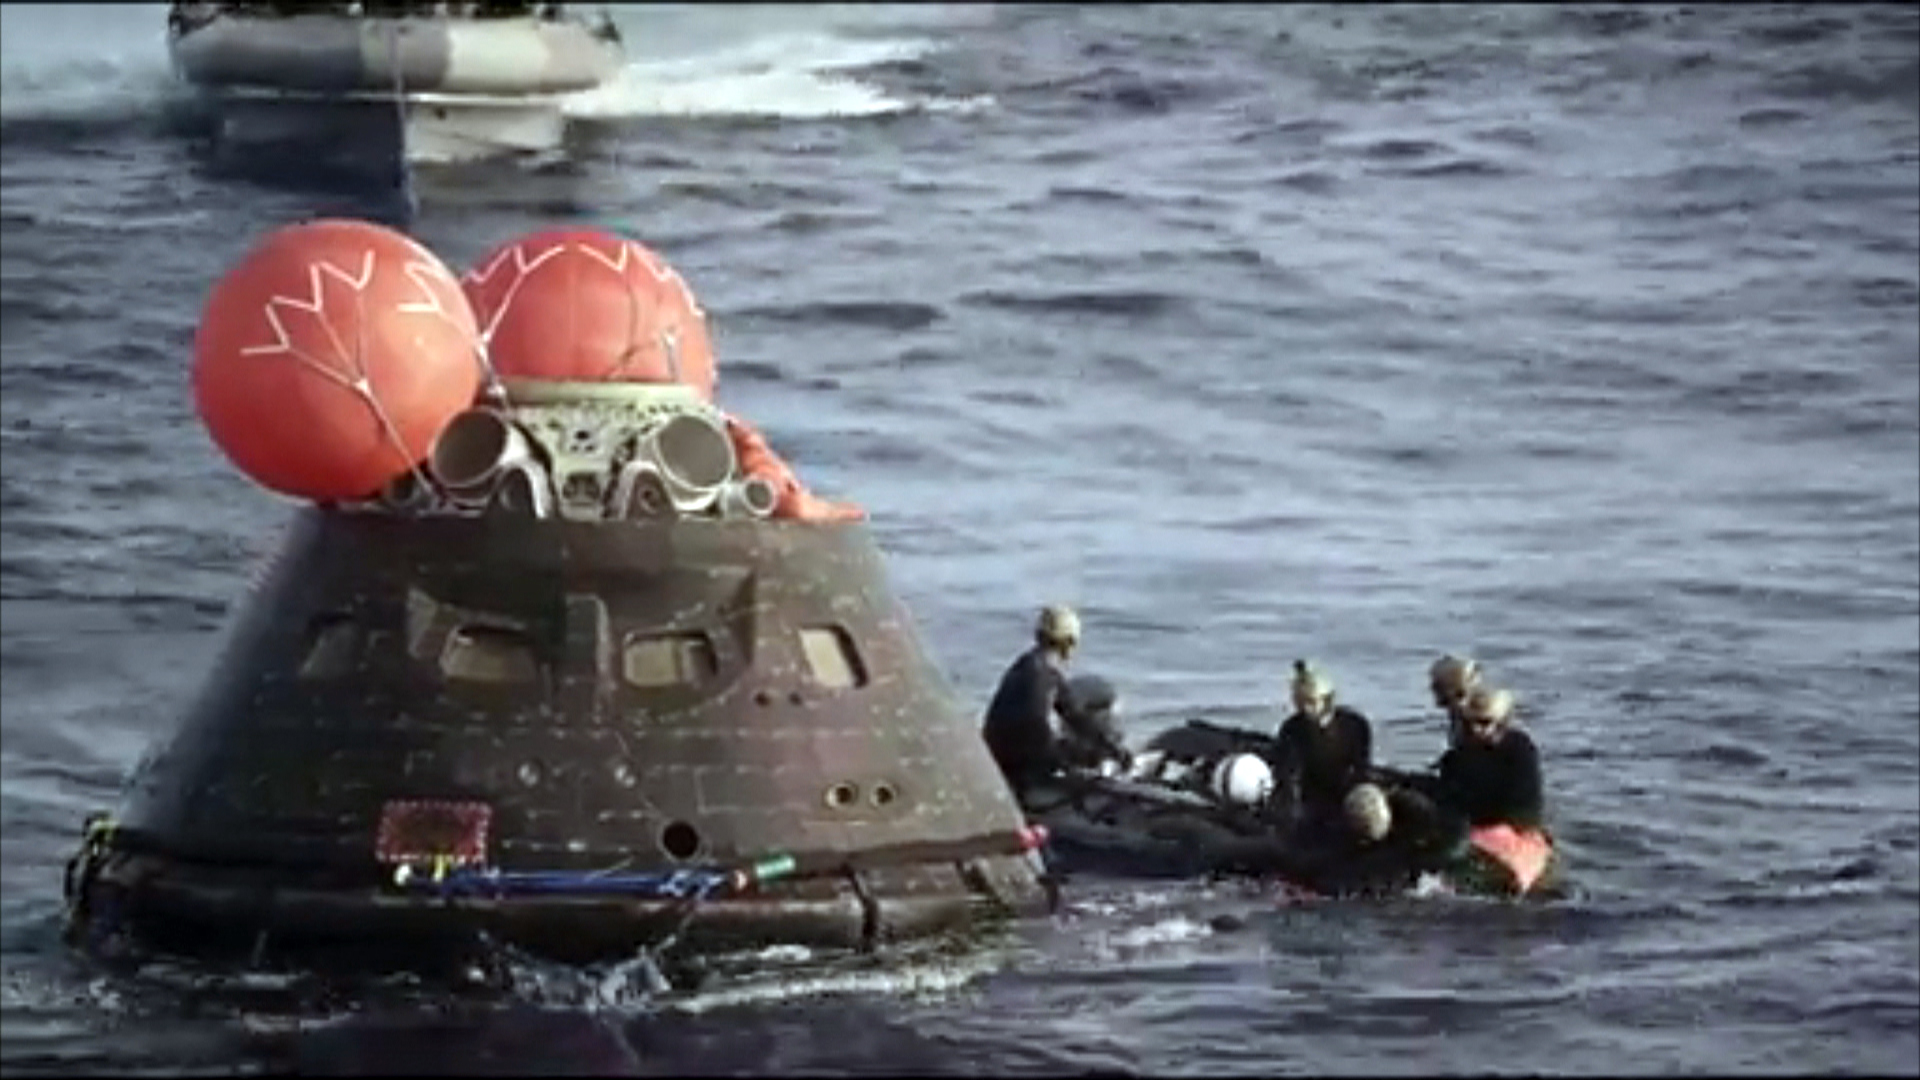 Home, Sweet Home: Orion Spacecraft Arrives Back at Kennedy Space Center